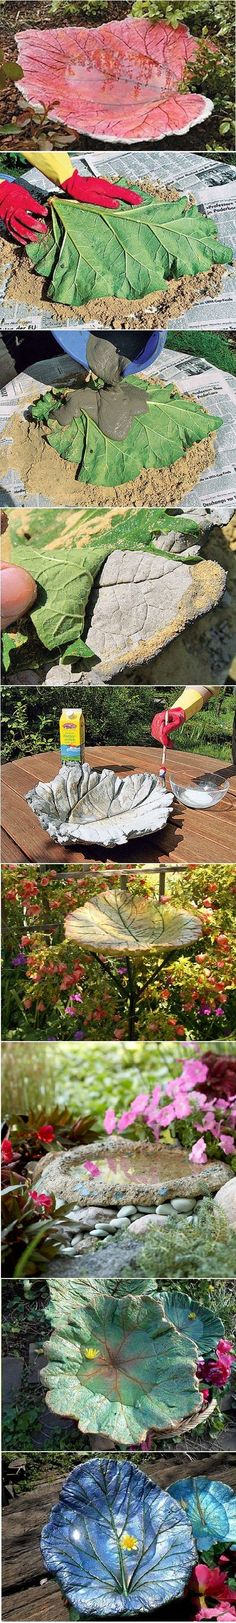 How To Make A Stand Cast Birdbath in Leaf Shape(Diy Garden Projects) Concrete Projects, Outdoor Projects, Garden Crafts, Garden Projects, Diy Projects, Concrete Leaves, Dream Garden, Yard Art, Garden Inspiration